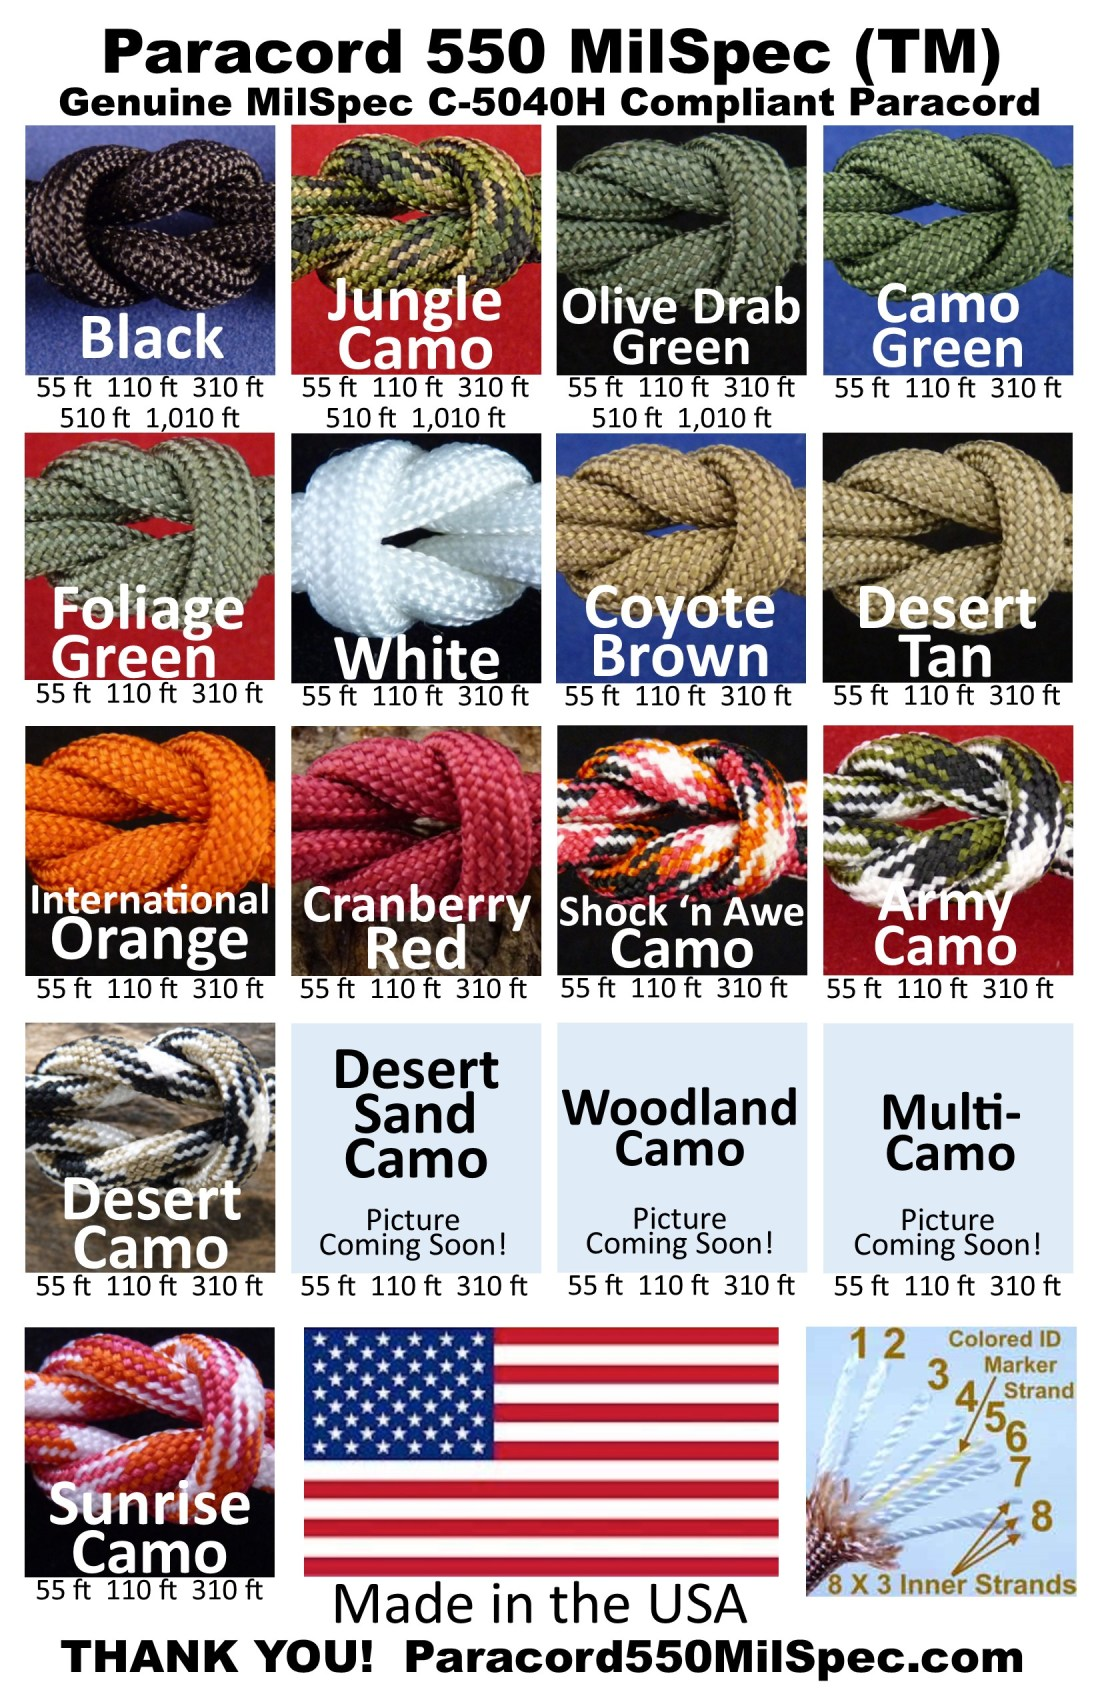 Paracord 550 mil-spec grade military use Paracord - strong and reliable